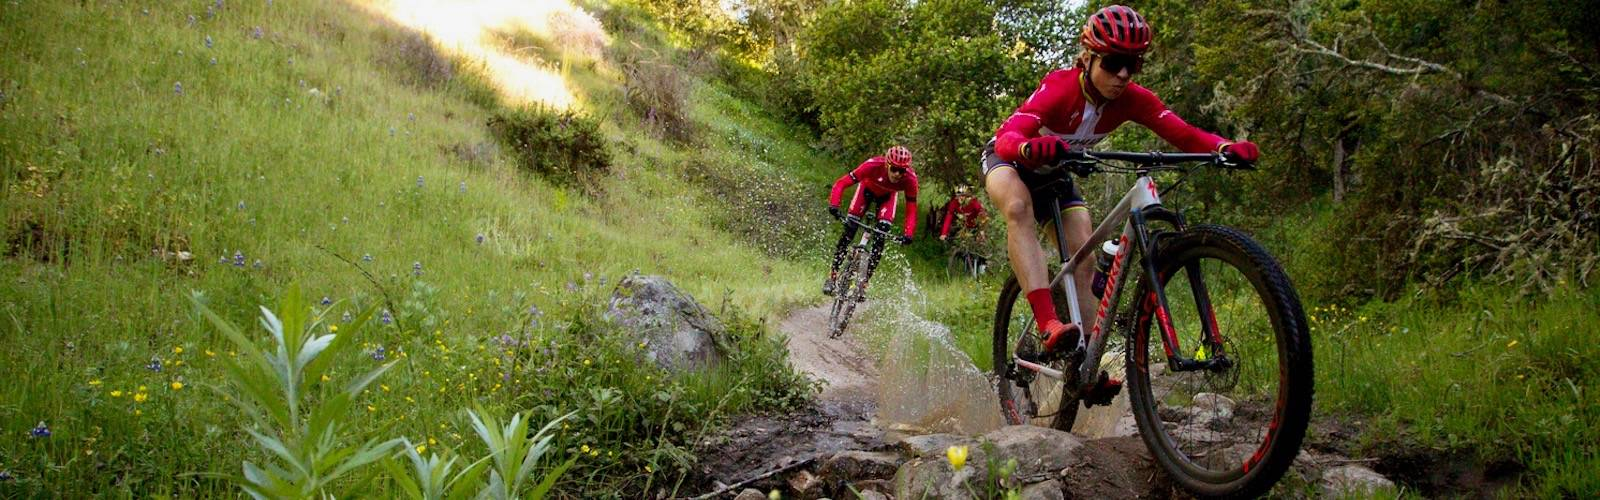 Riding the trails on Specialized bikes.